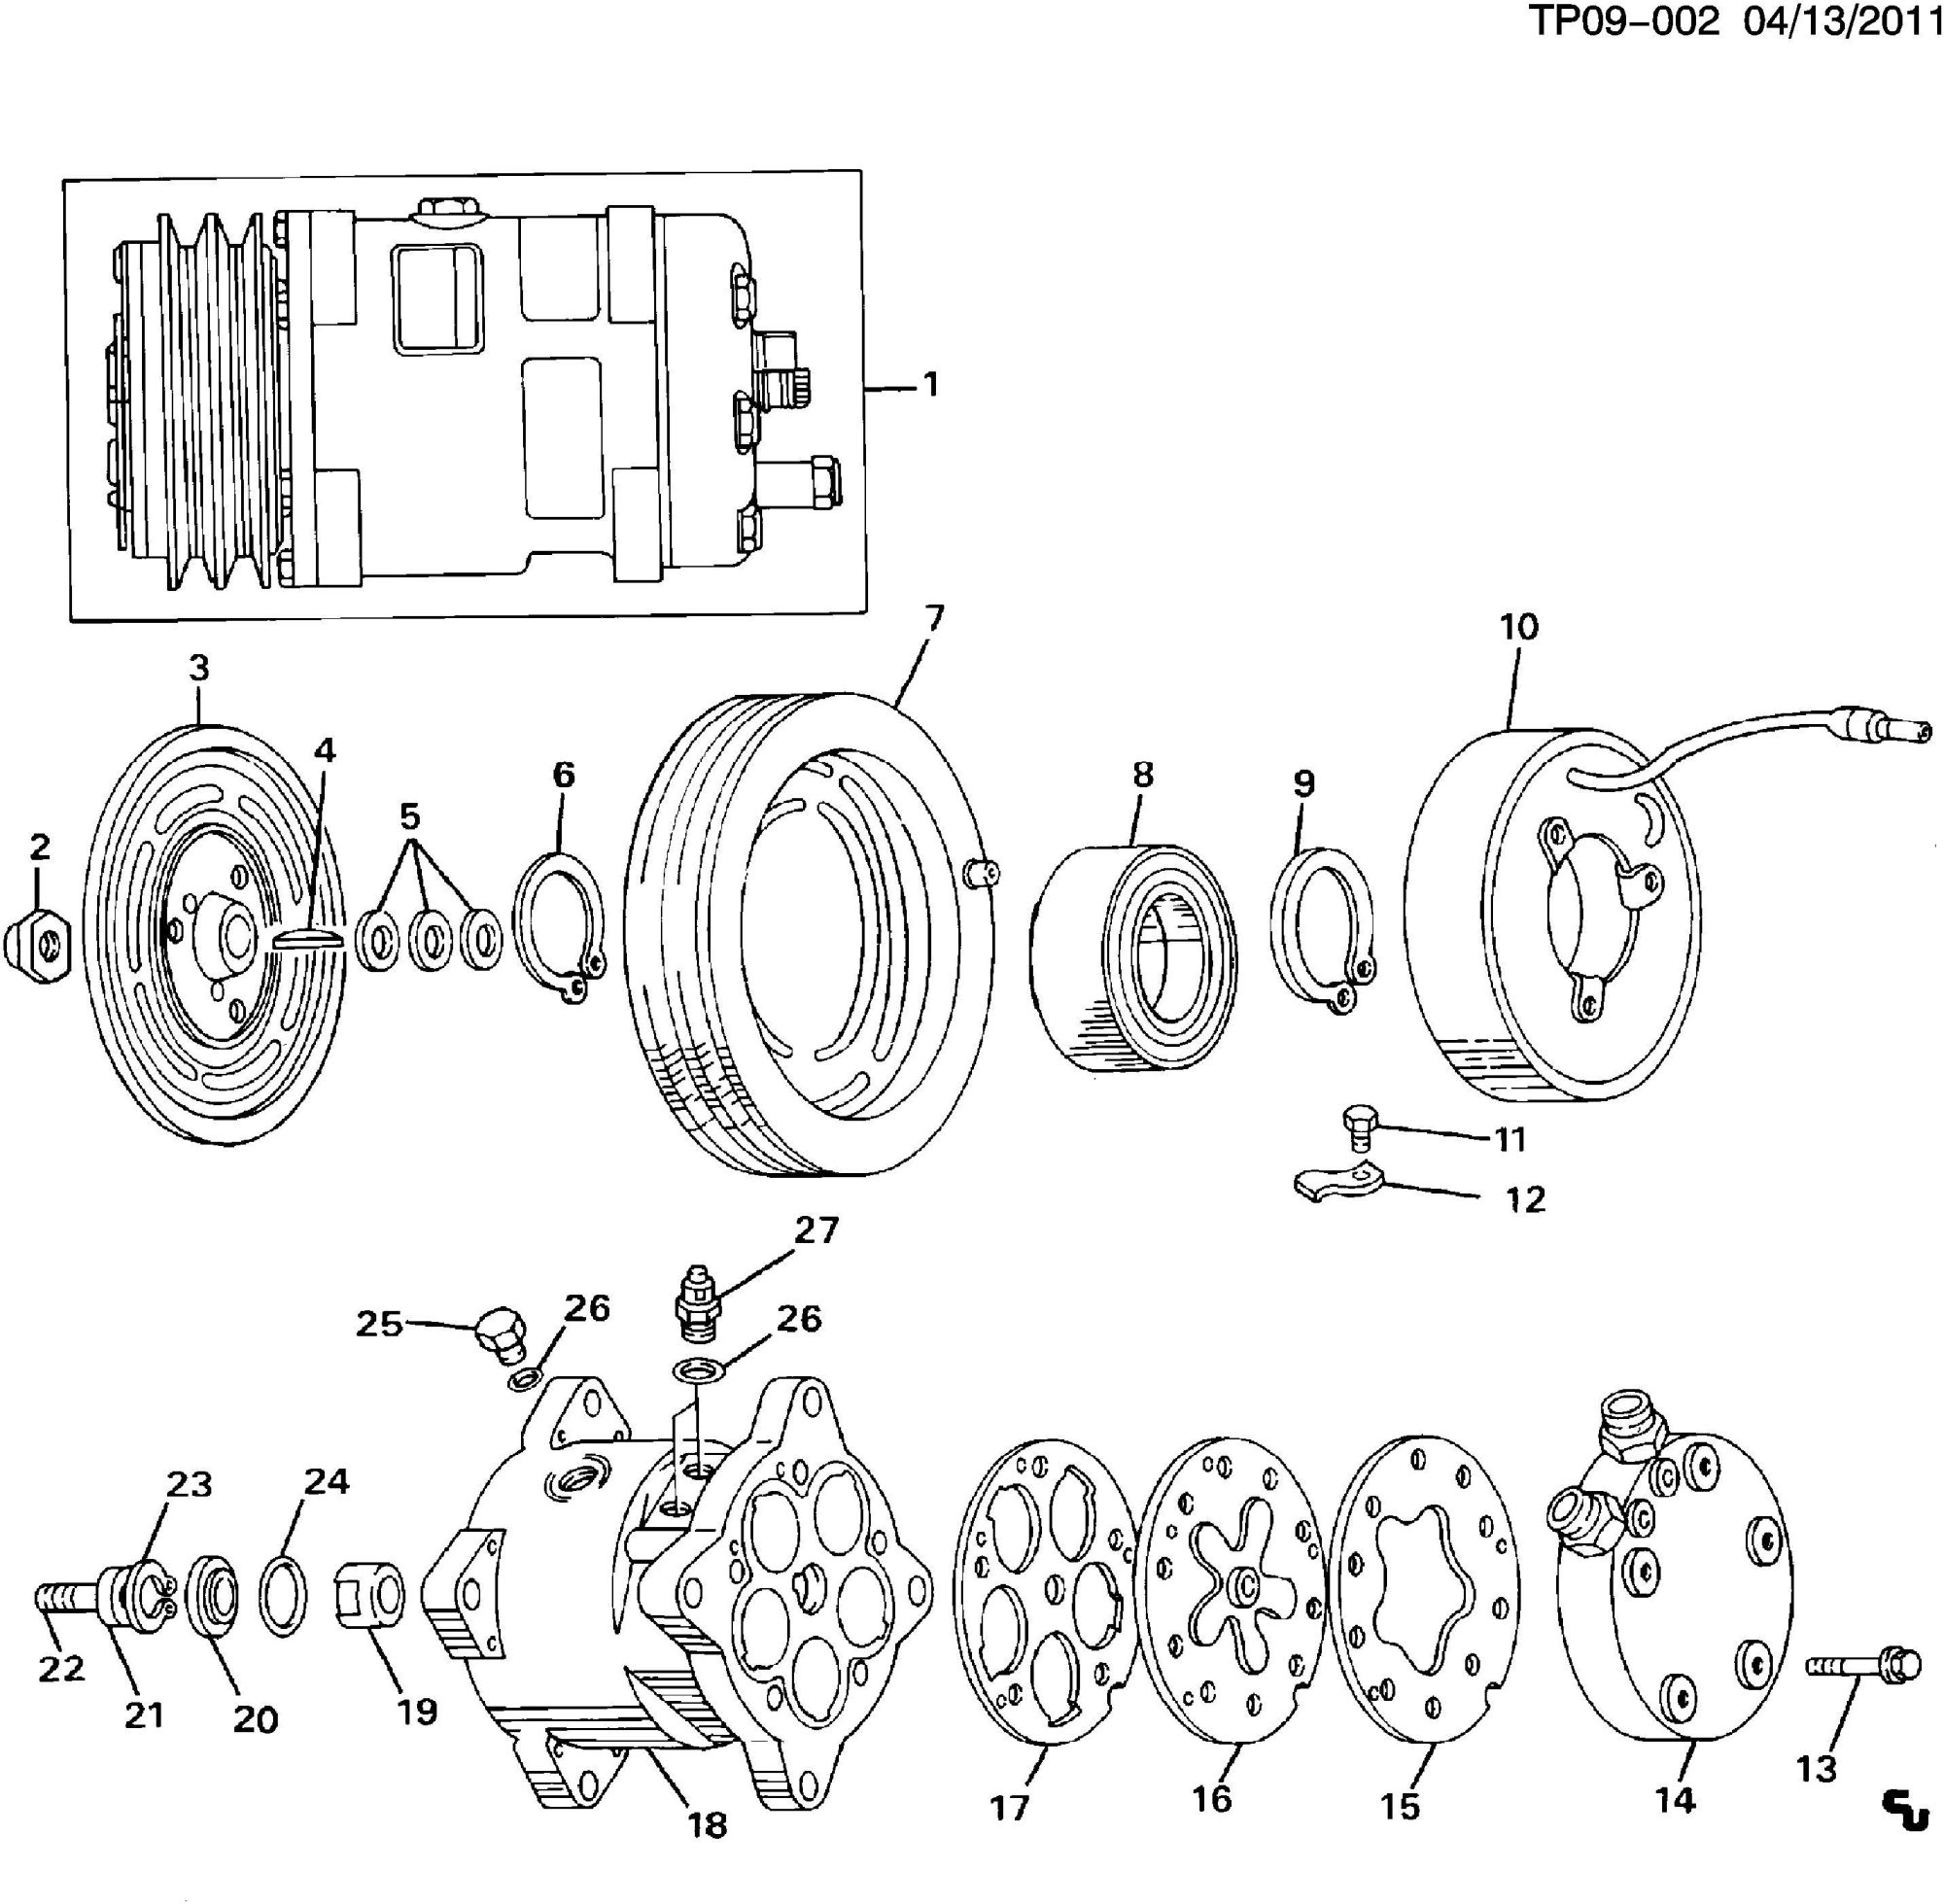 hight resolution of 1996 oldsmobile aurora engine diagram images gallery